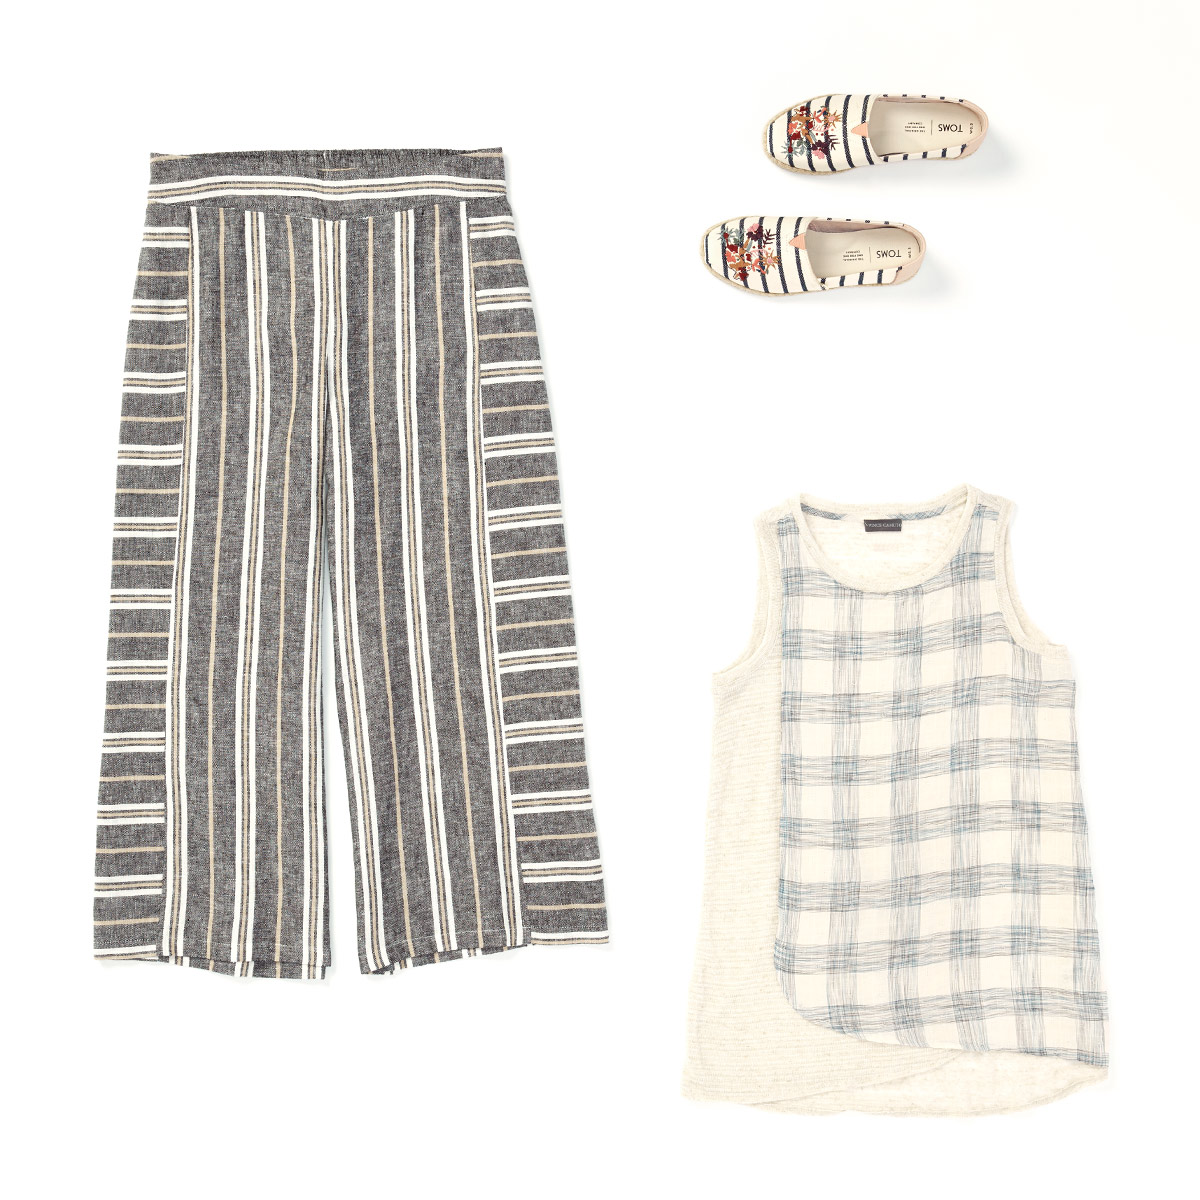 A patterned women's tank, pair of slacks and pair of sneakers laid flat on a white background.